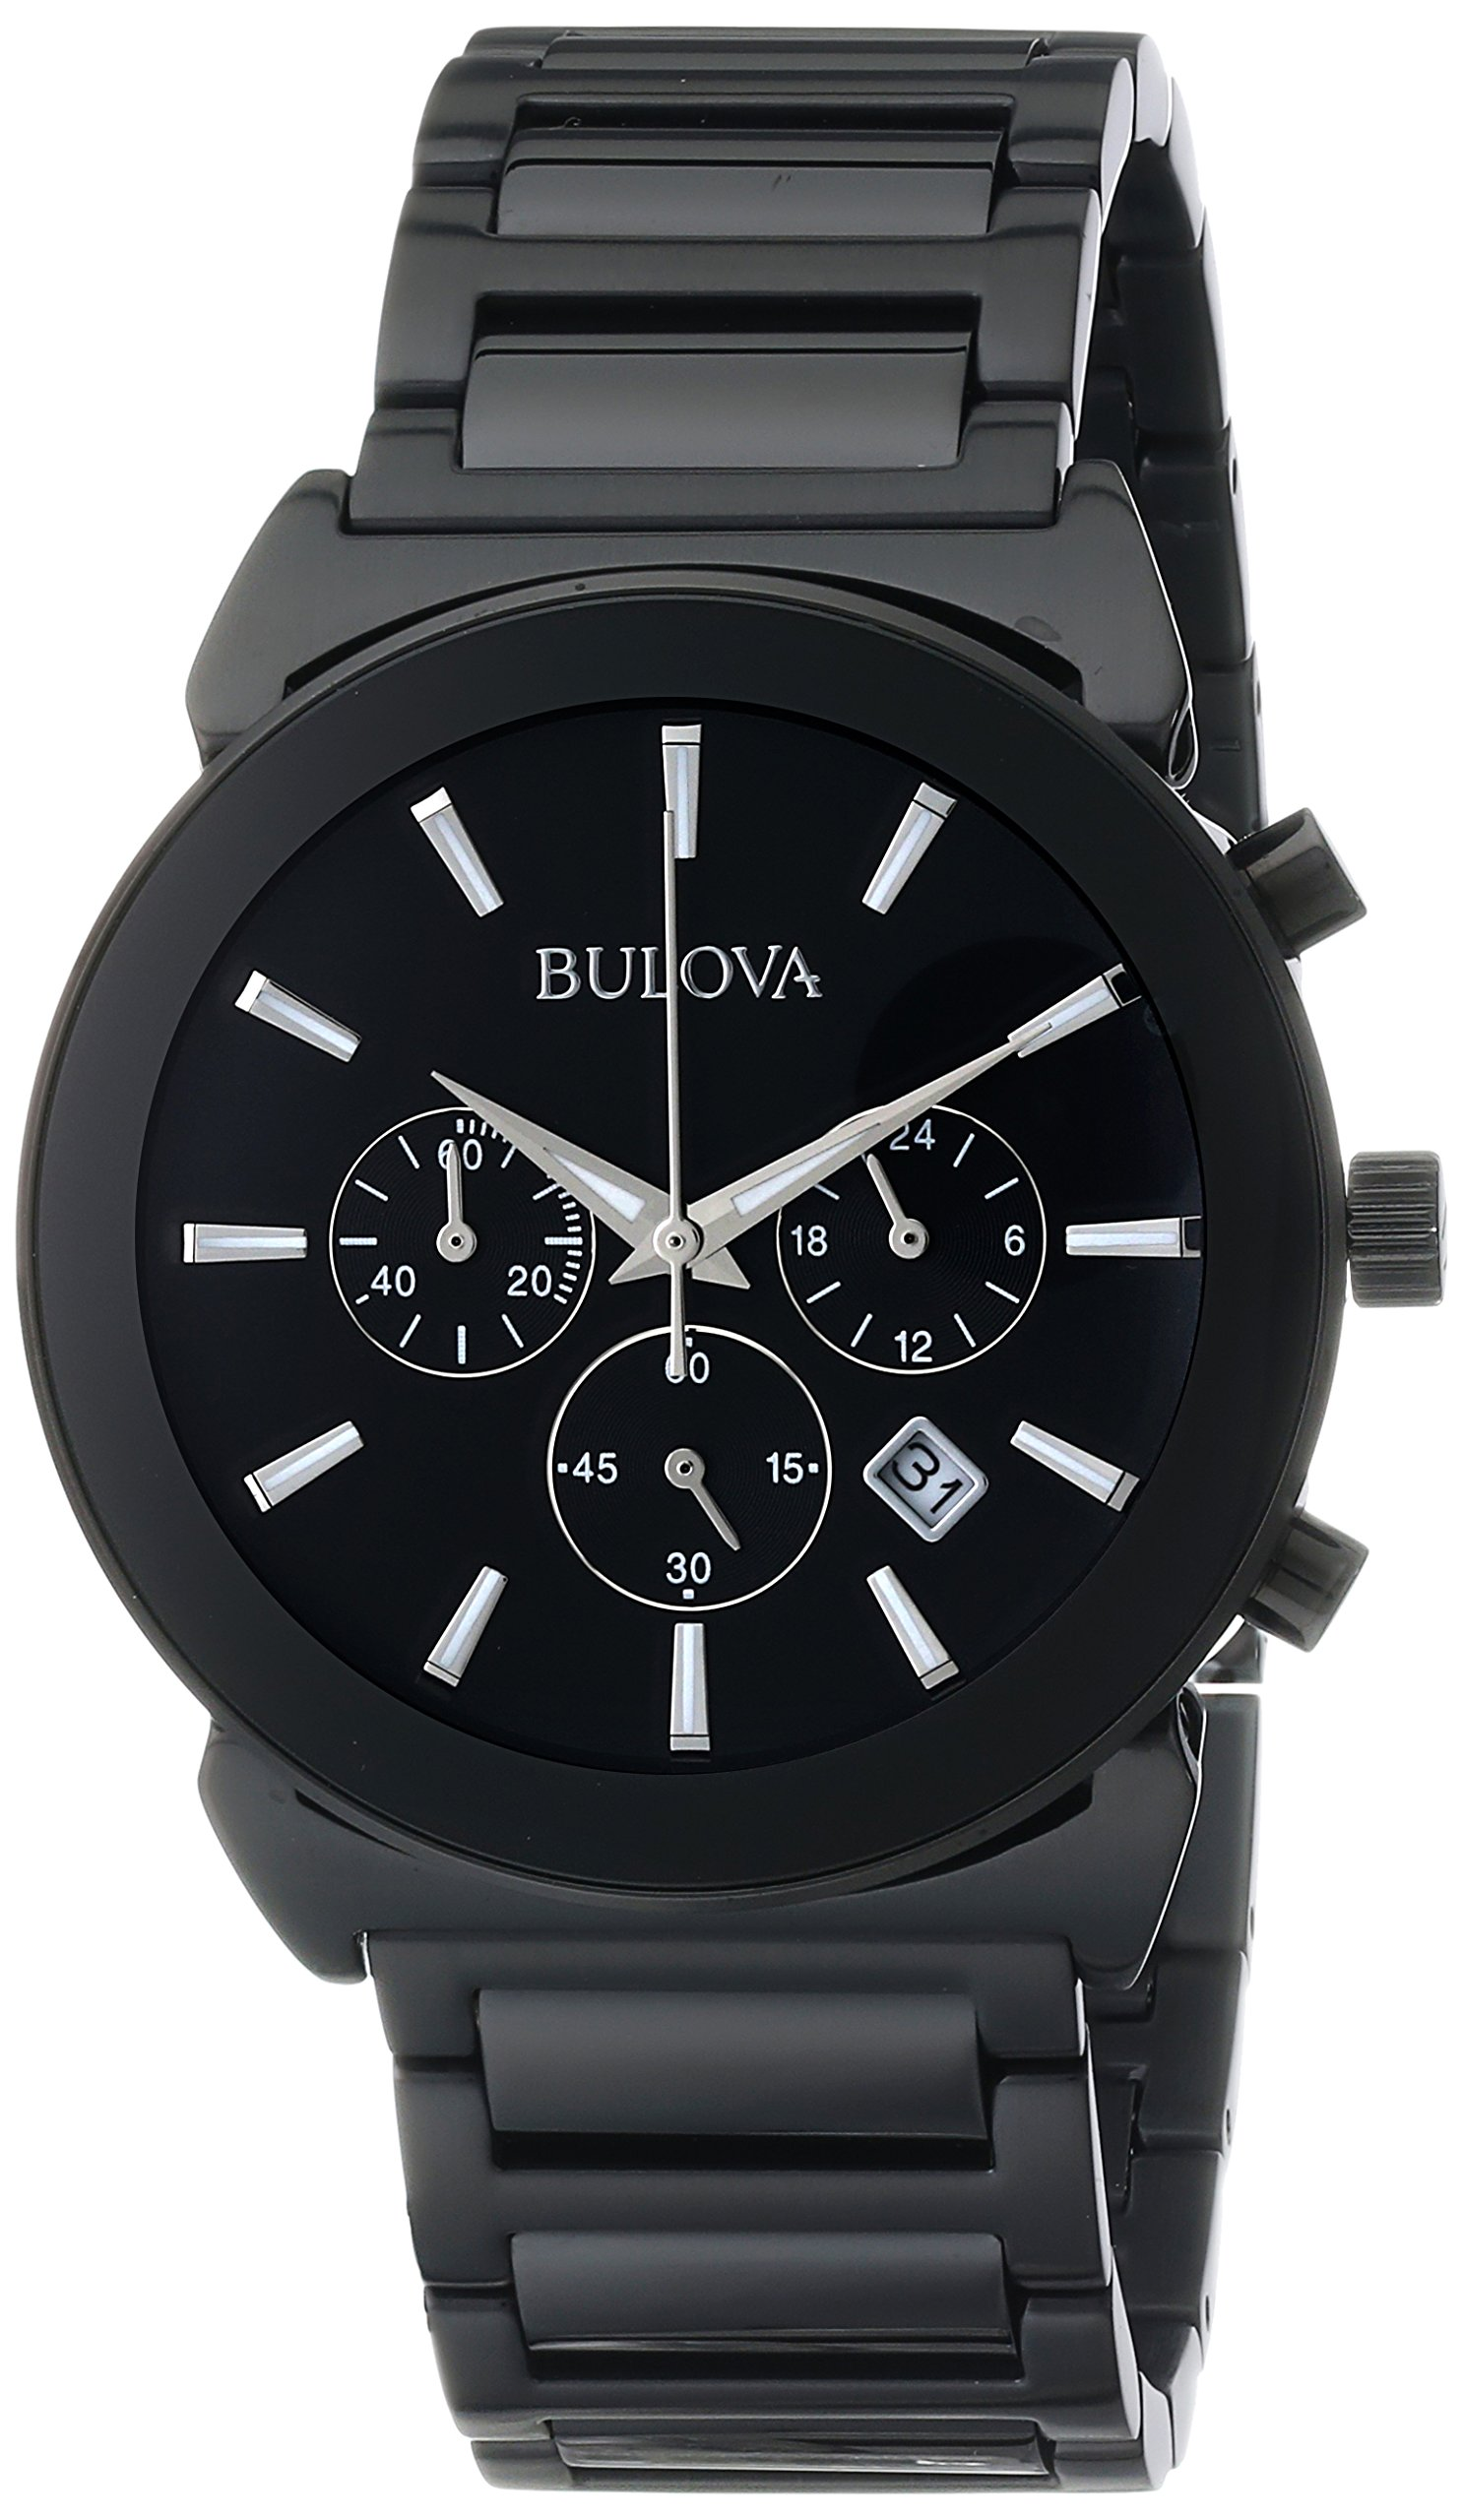 Bulova Men's 98B215 Analog Display Japanese Quartz Black Watch